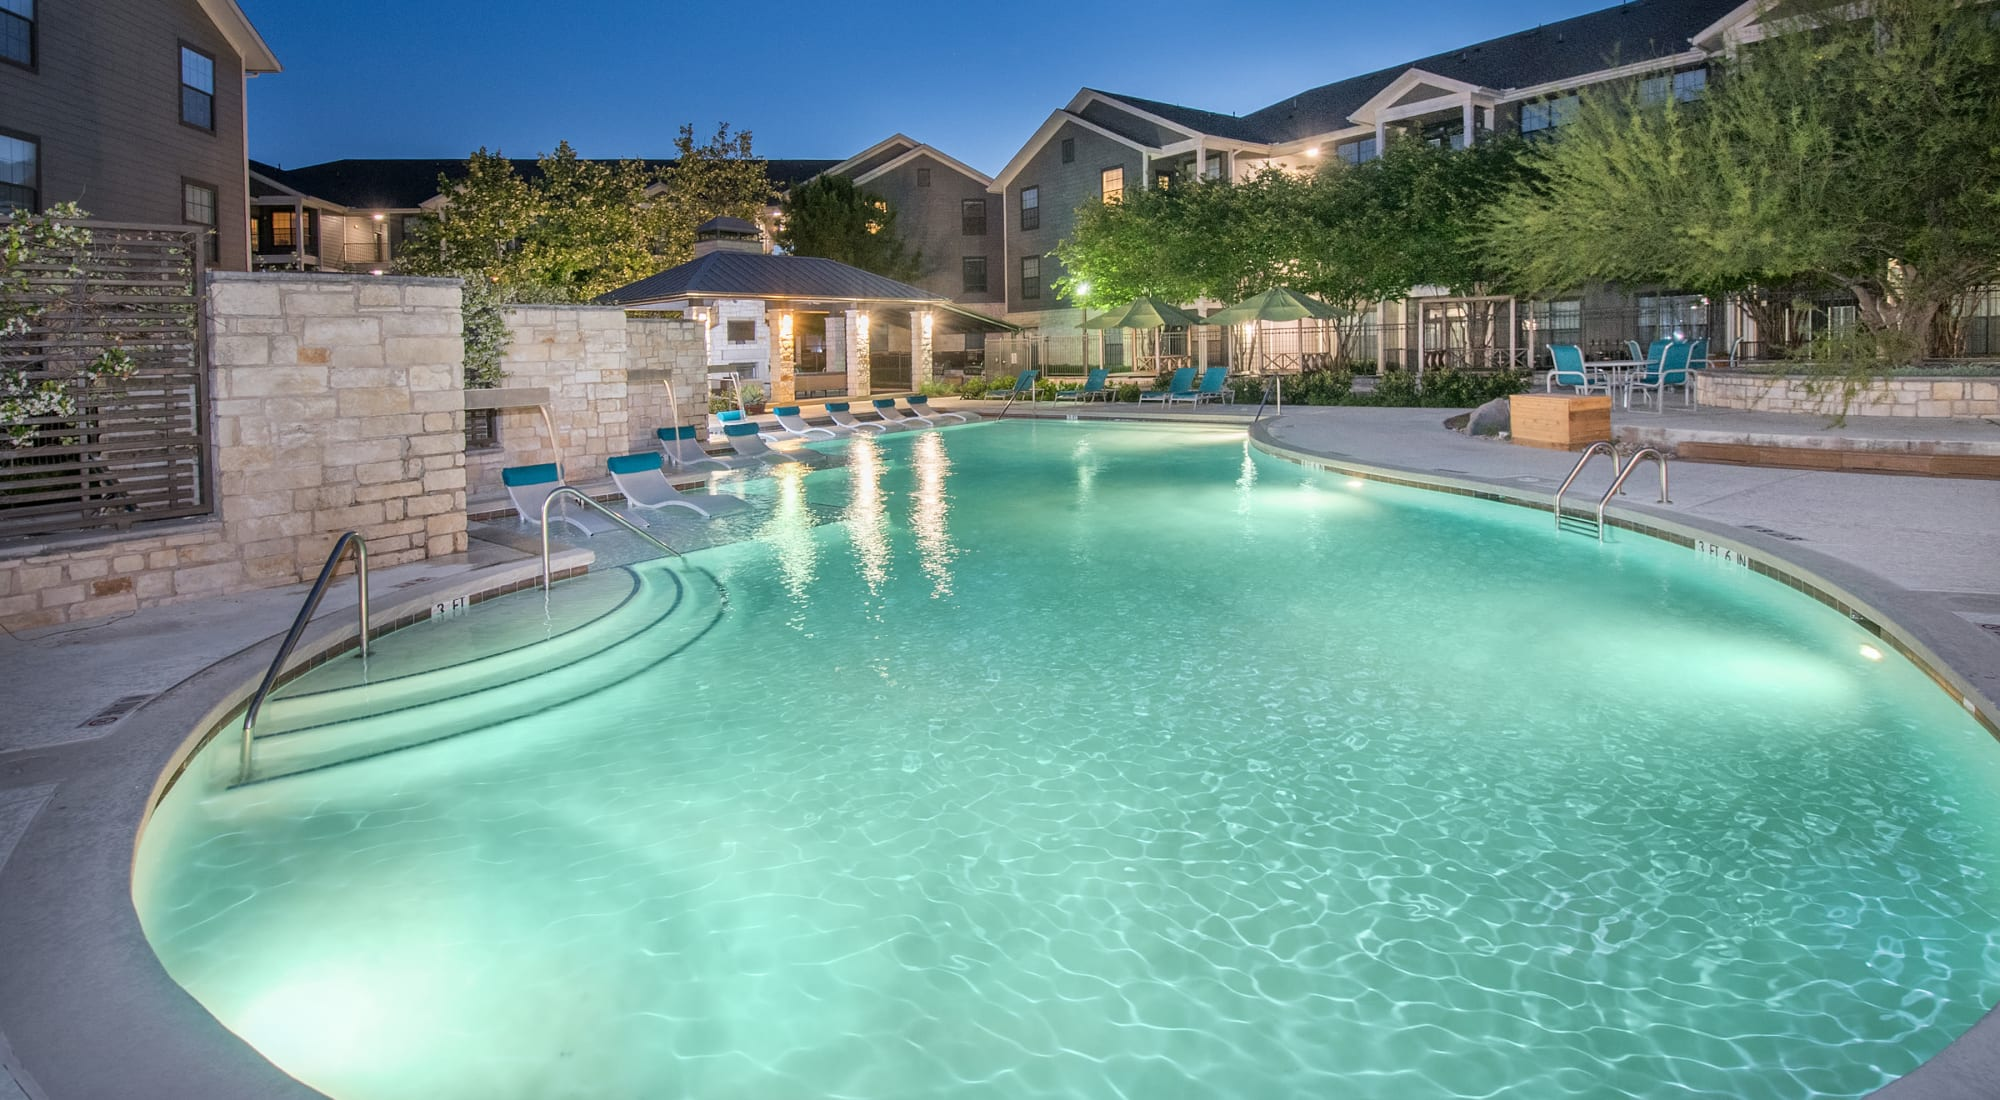 Texas apartments at Villas Tech Ridge in Pflugerville